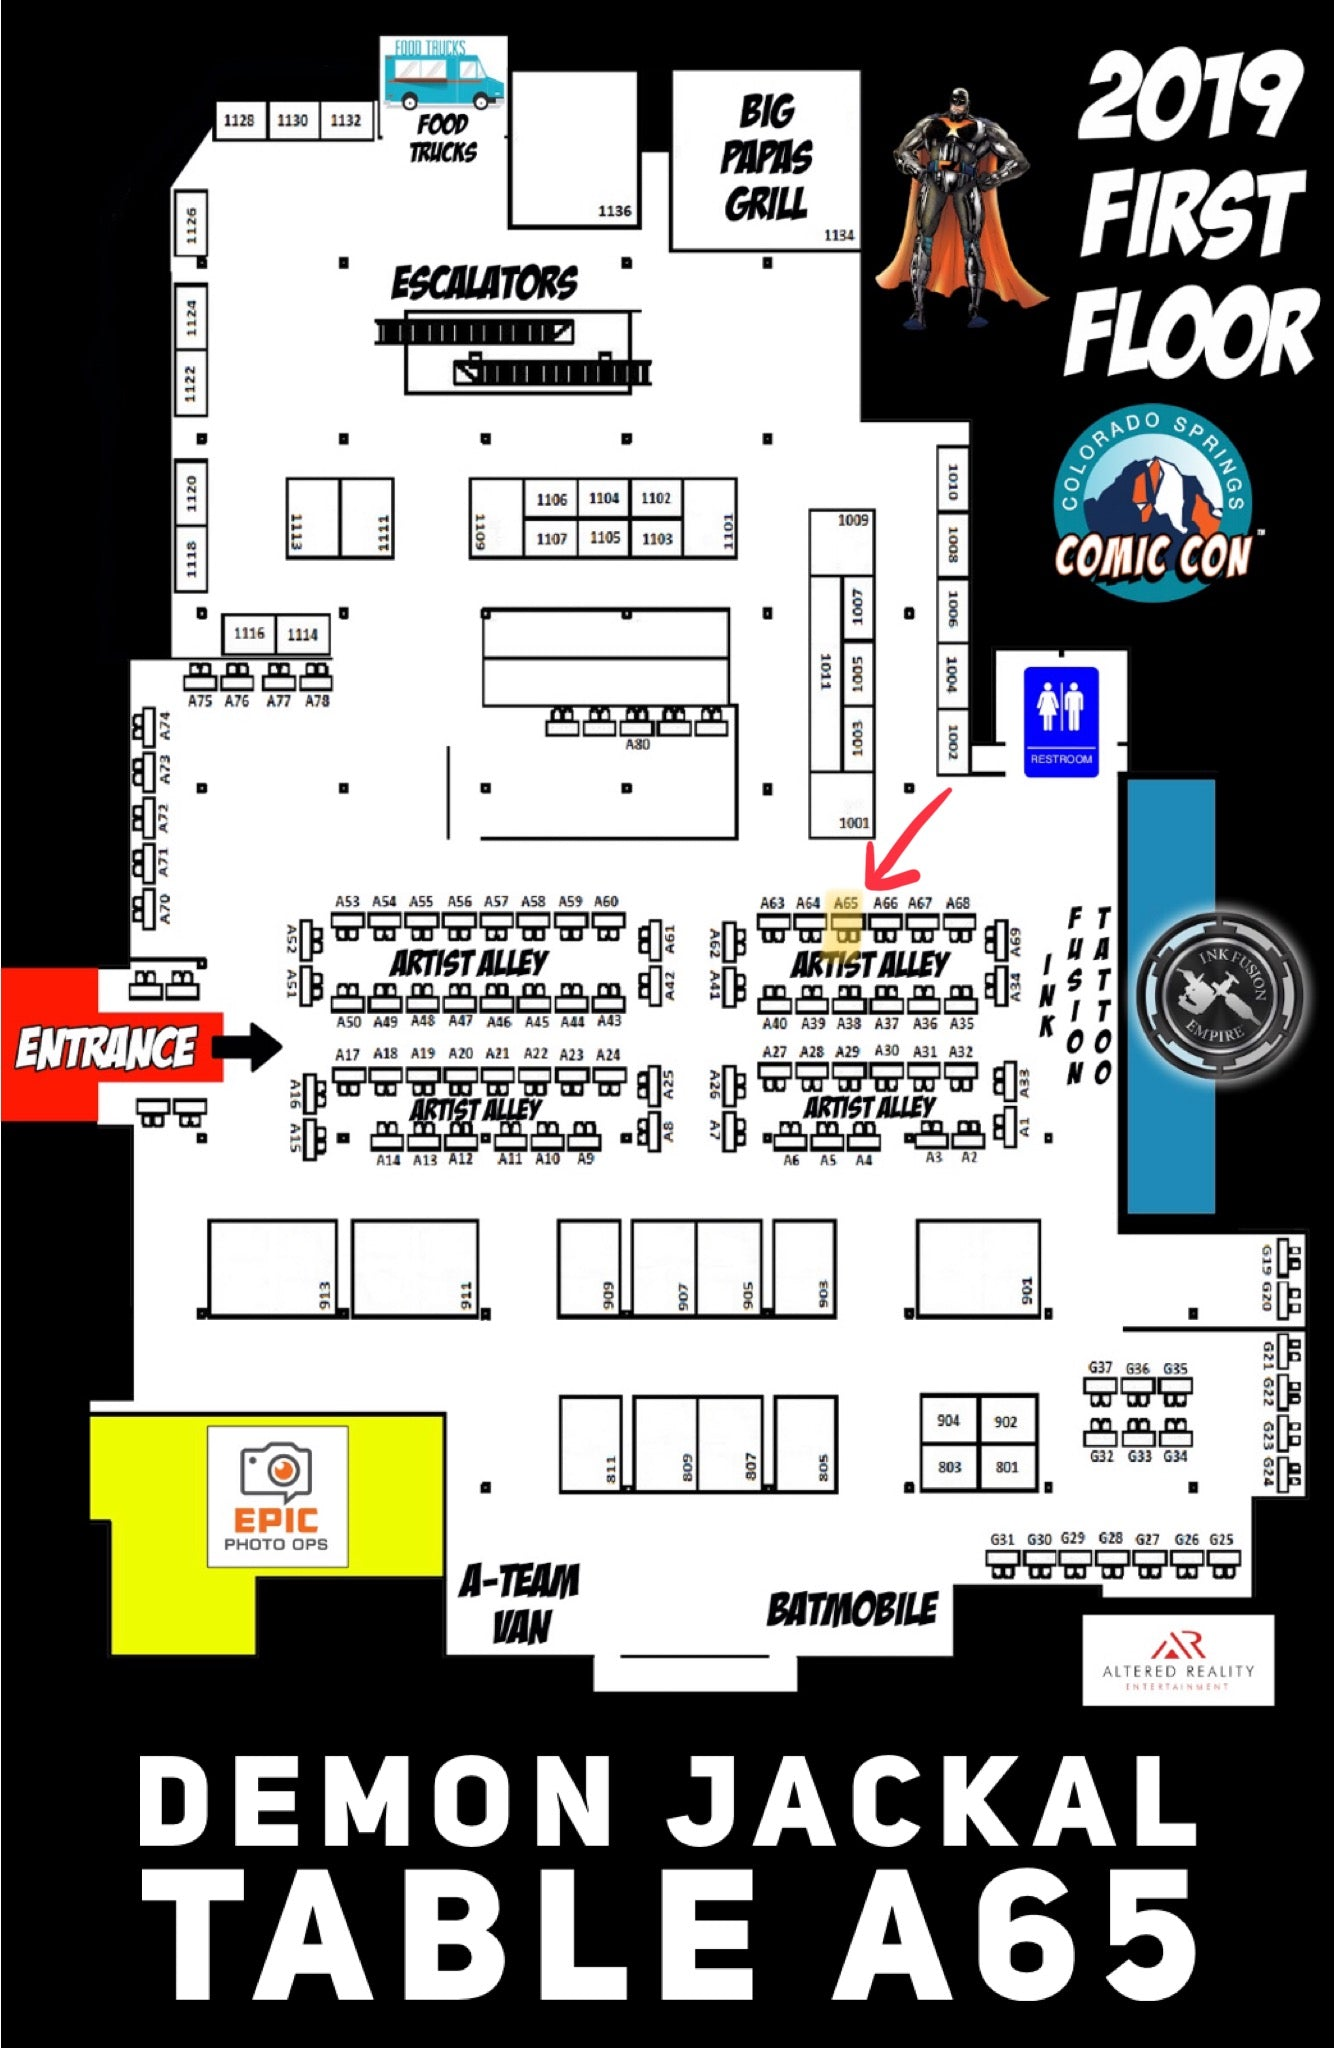 Colorado Springs Comic Con 2019 First Floor Map